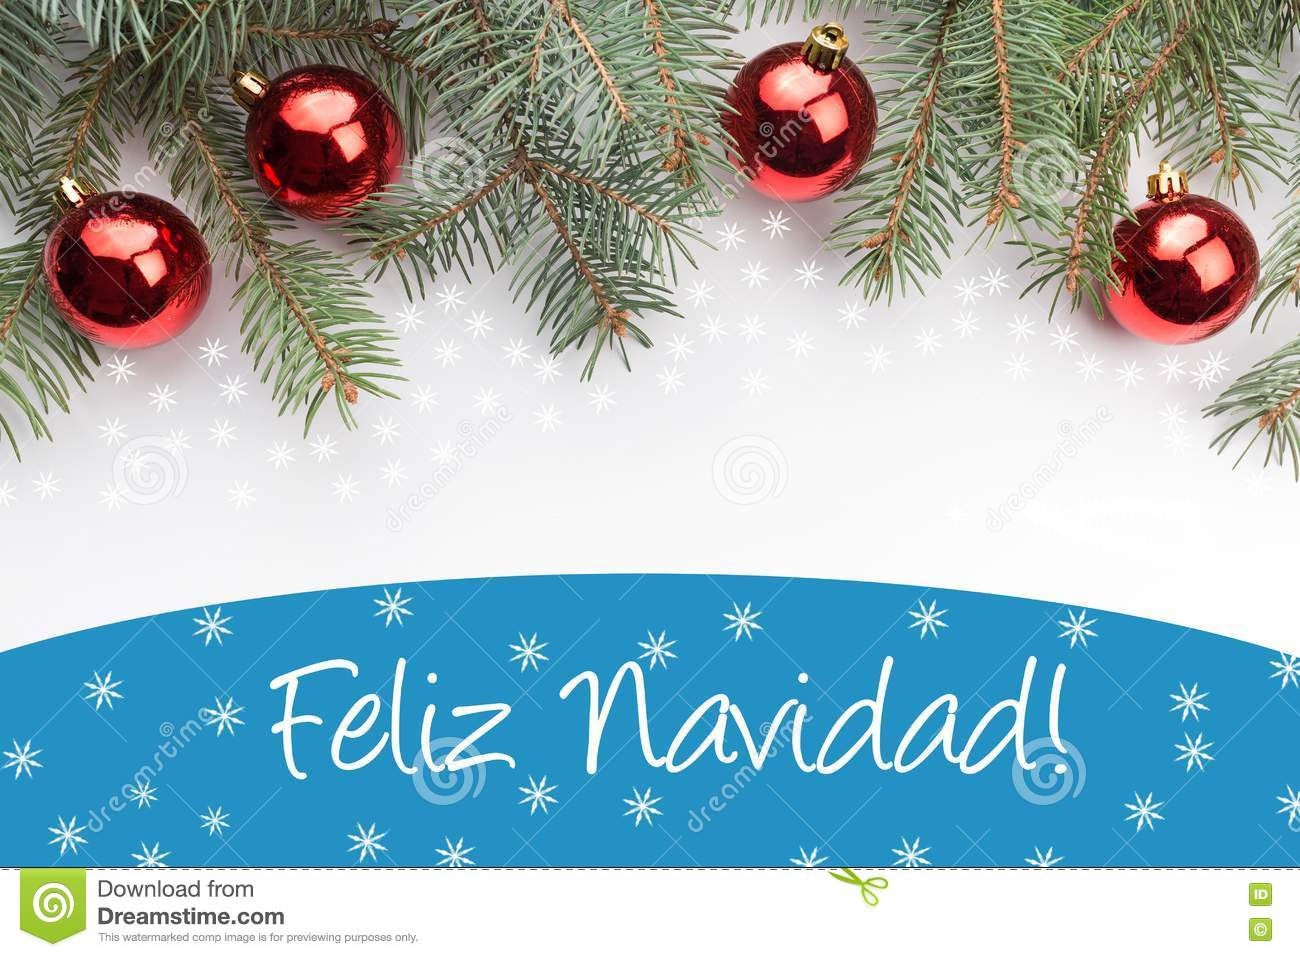 Christmas decorations with the greeting feliz navidad in spanish christmas decorations with the greeting feliz navidad in spanish m4hsunfo